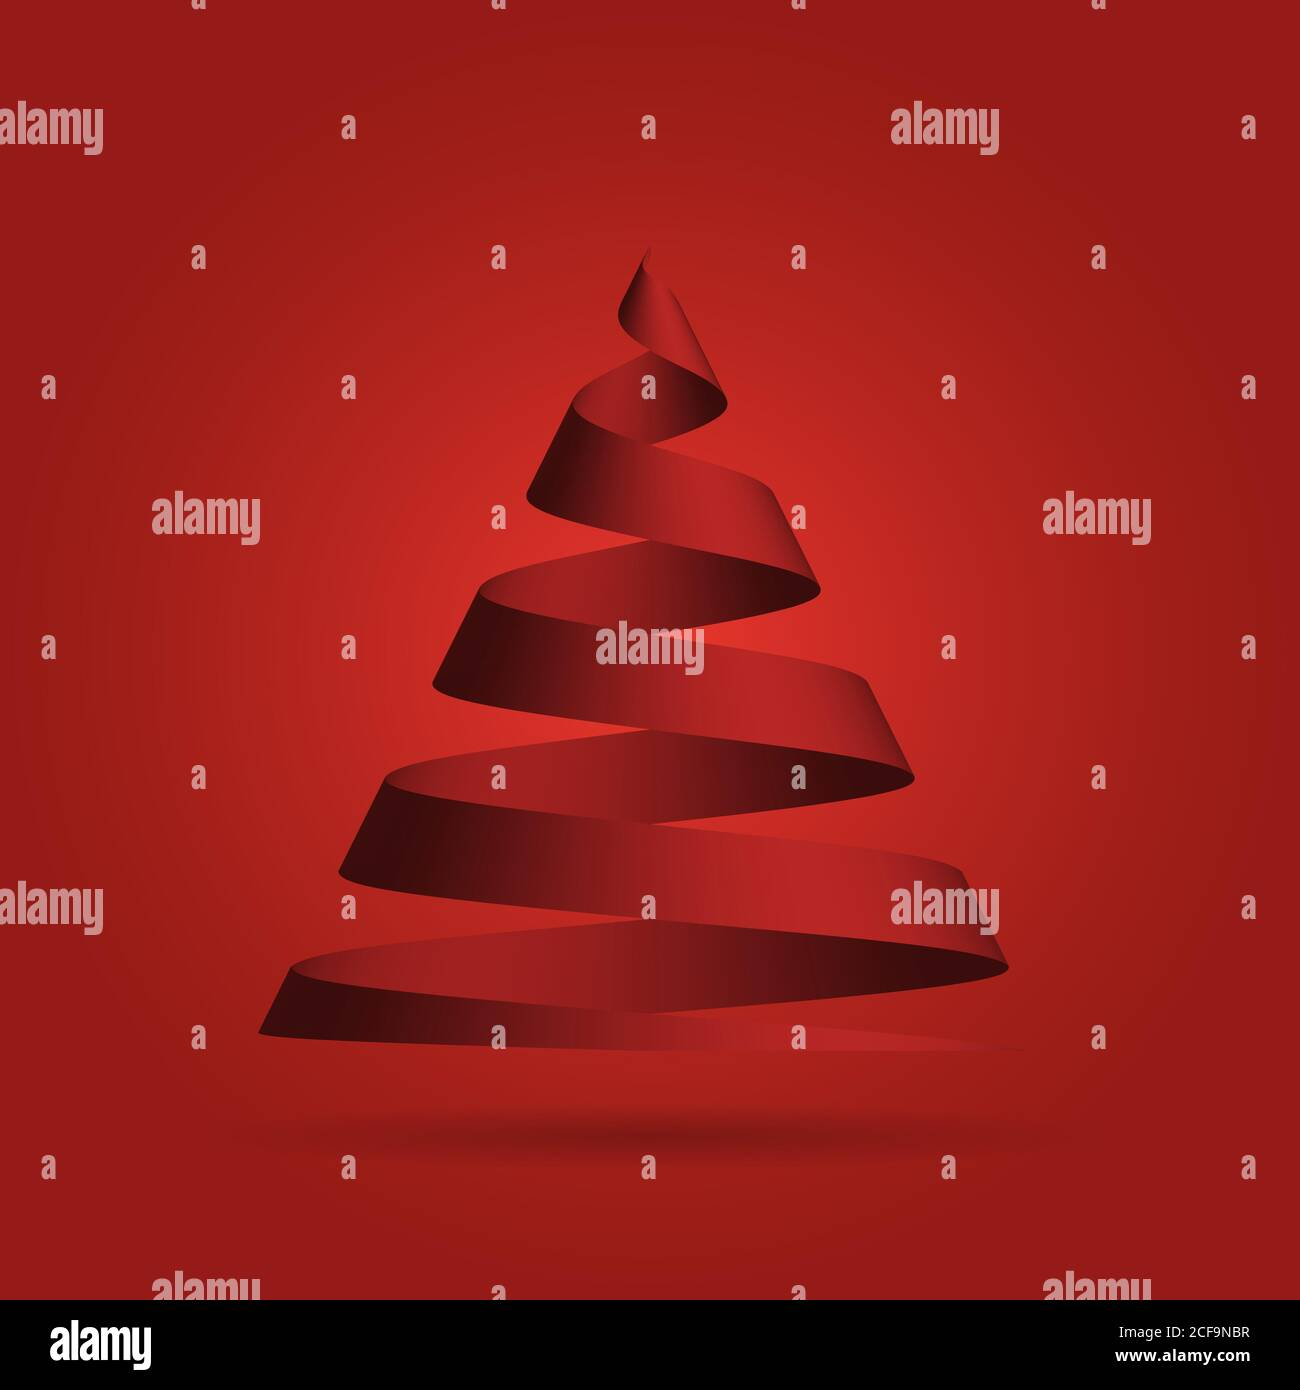 Simple Red Ribbon In A Shape Of Christmas Tree Merry Christmas Theme 3d Vector Illustration With Dropped Shadow And Red Gradient Background Stock Vector Image Art Alamy